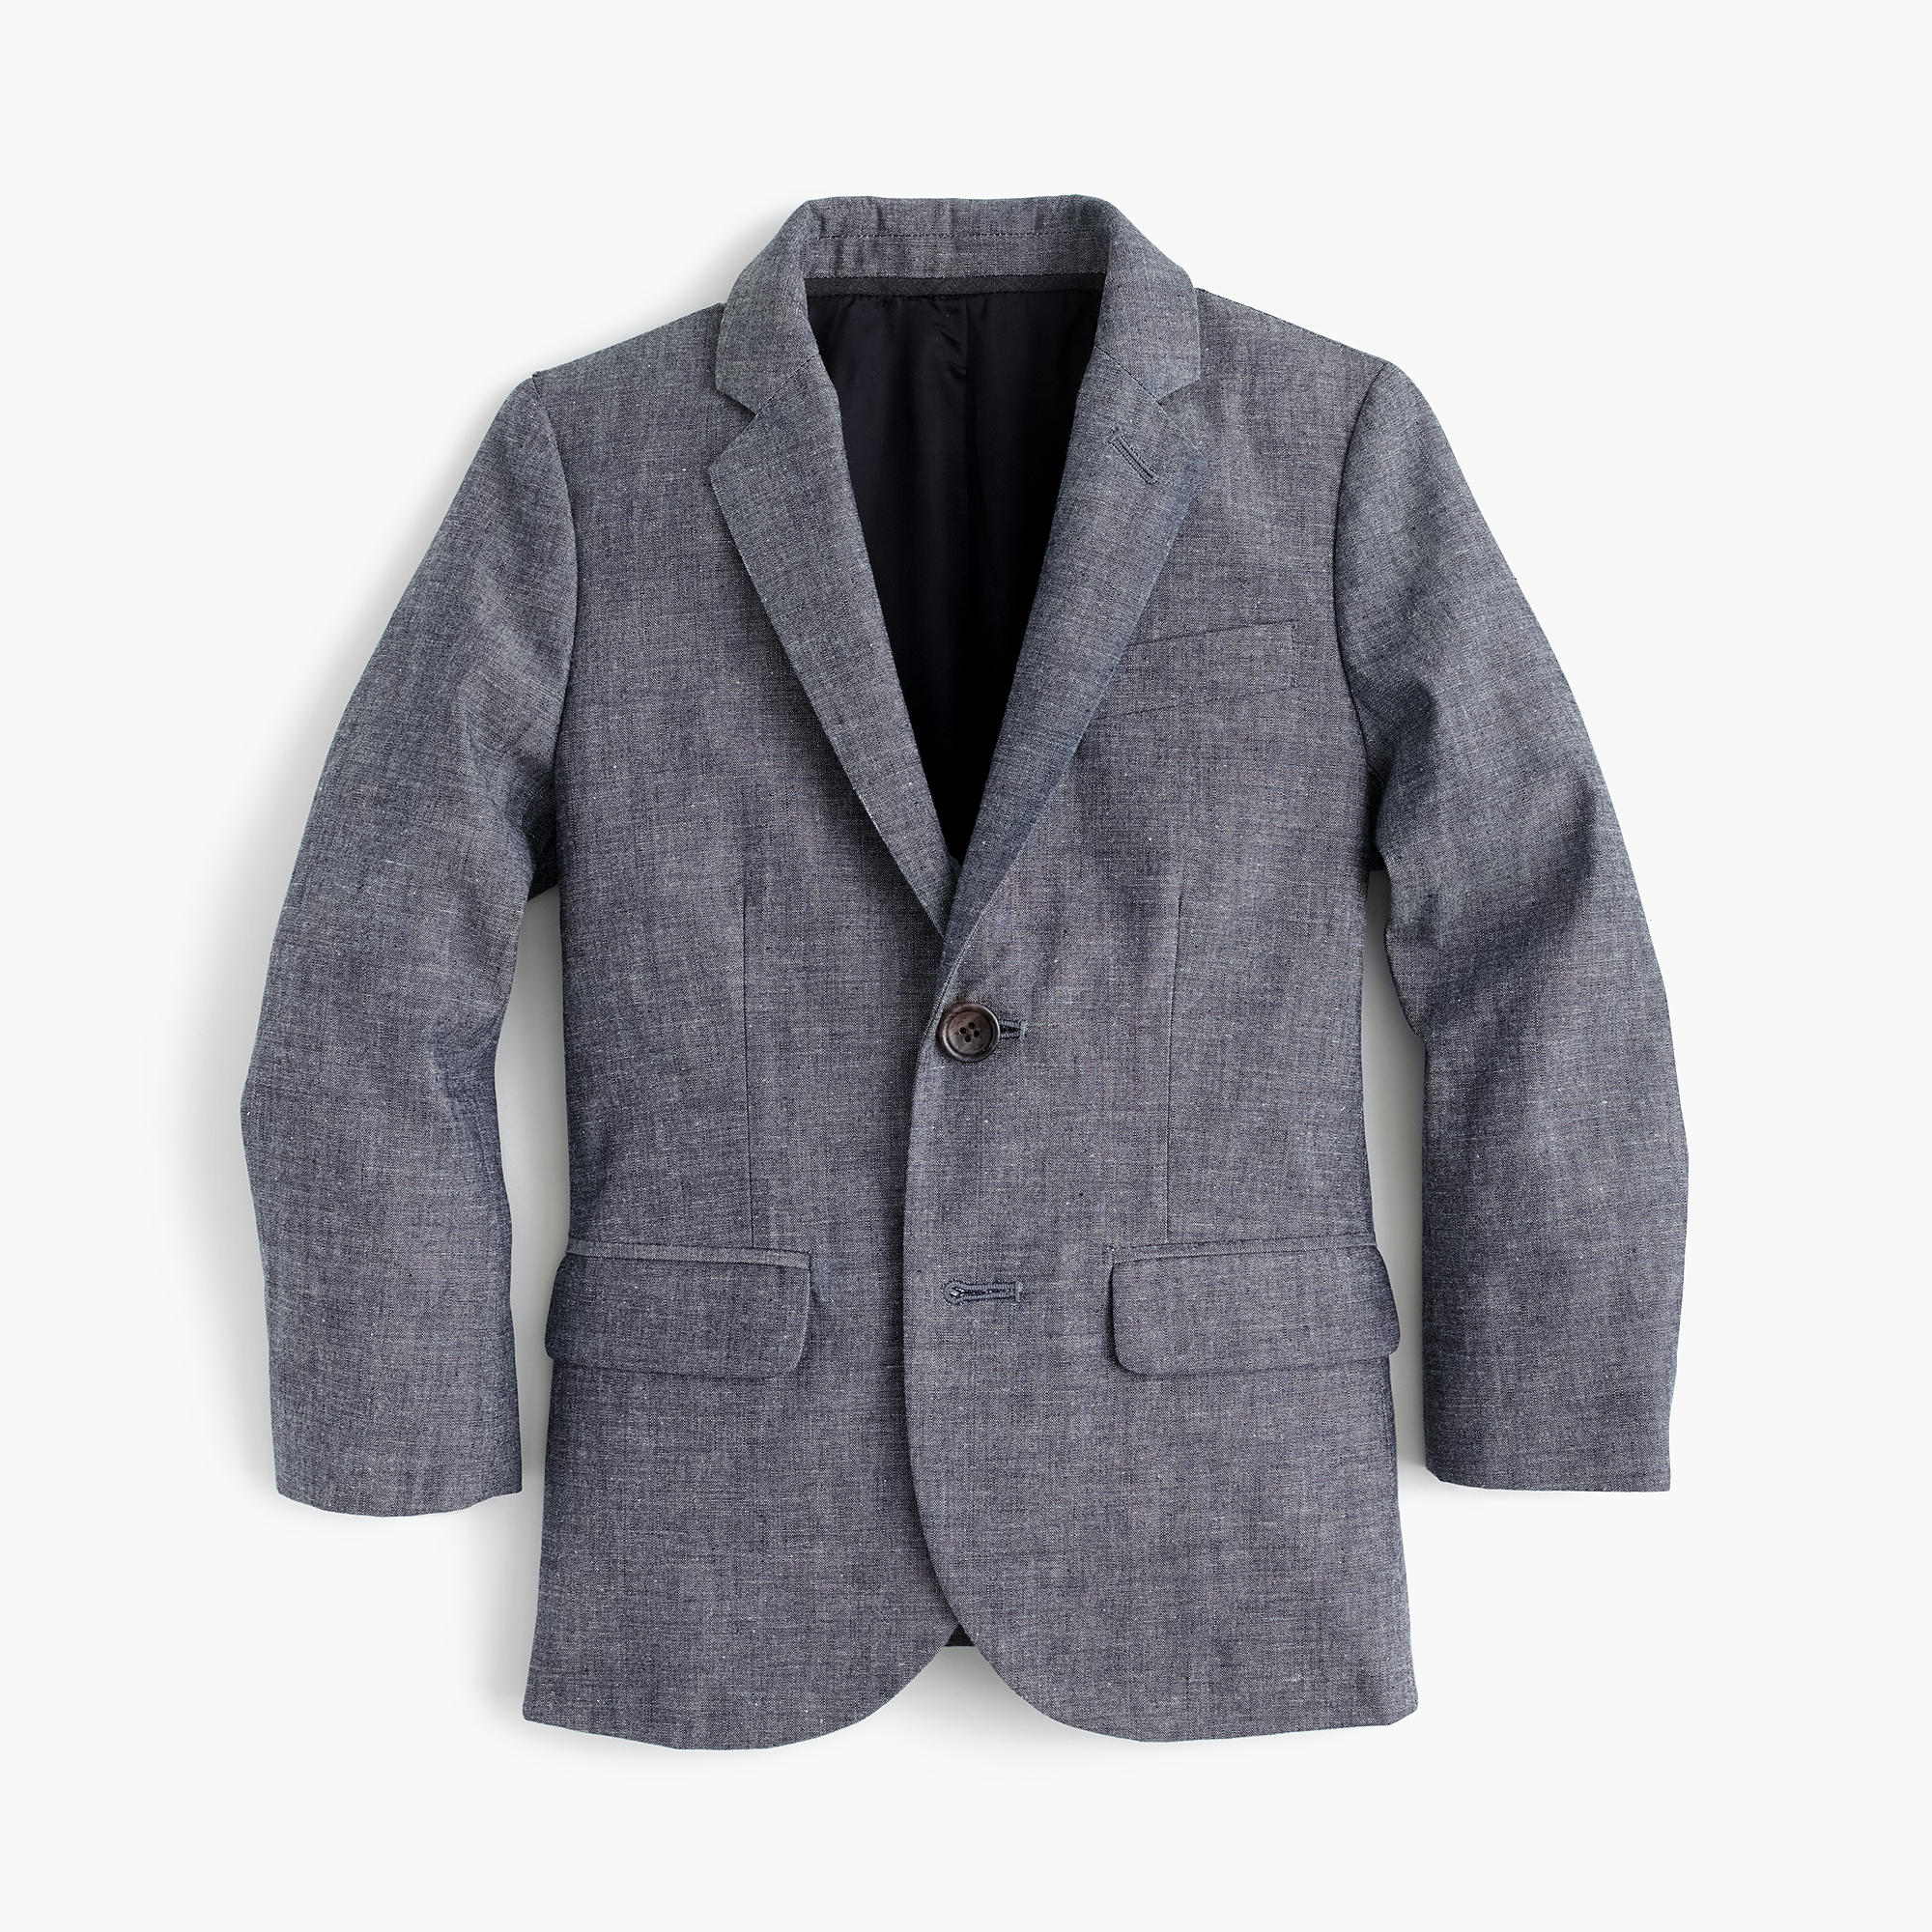 Suit jacket -  Boys Ludlow Suit Jacket In Japanese Chambray